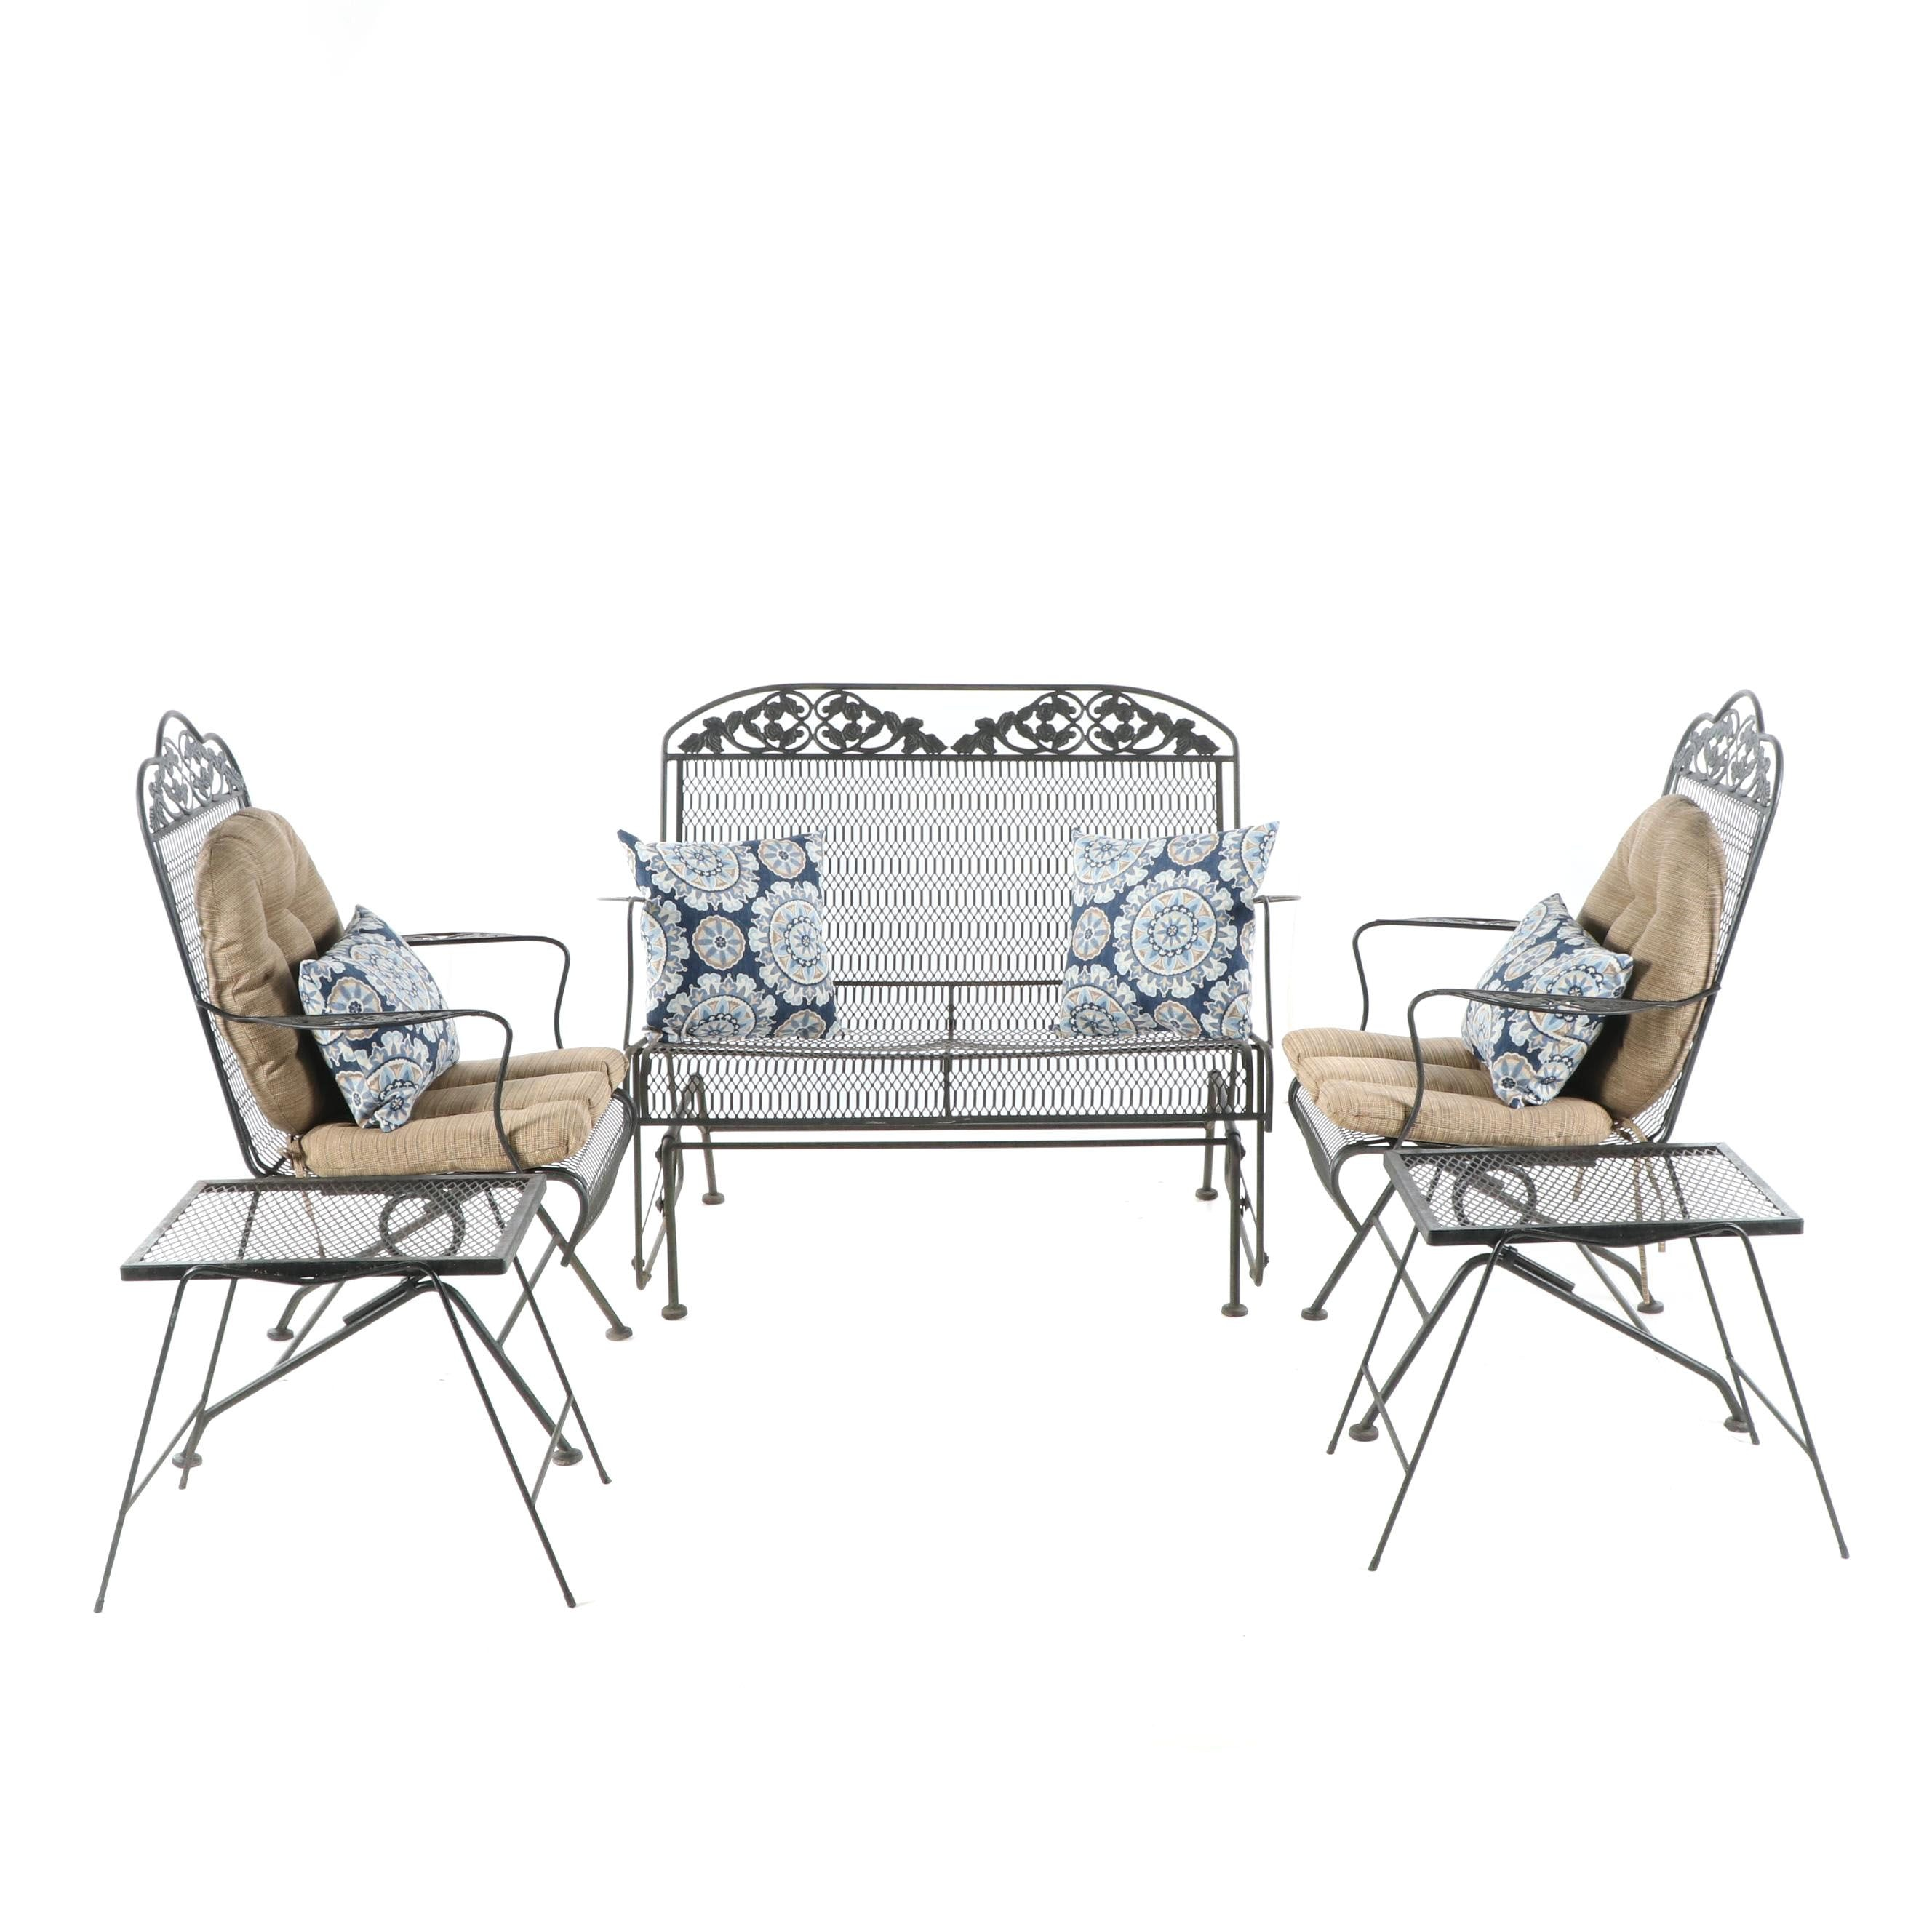 Rose Motif Metal Patio Loveseat, Rocking Armchairs, and Side Tables Set, 21st C.